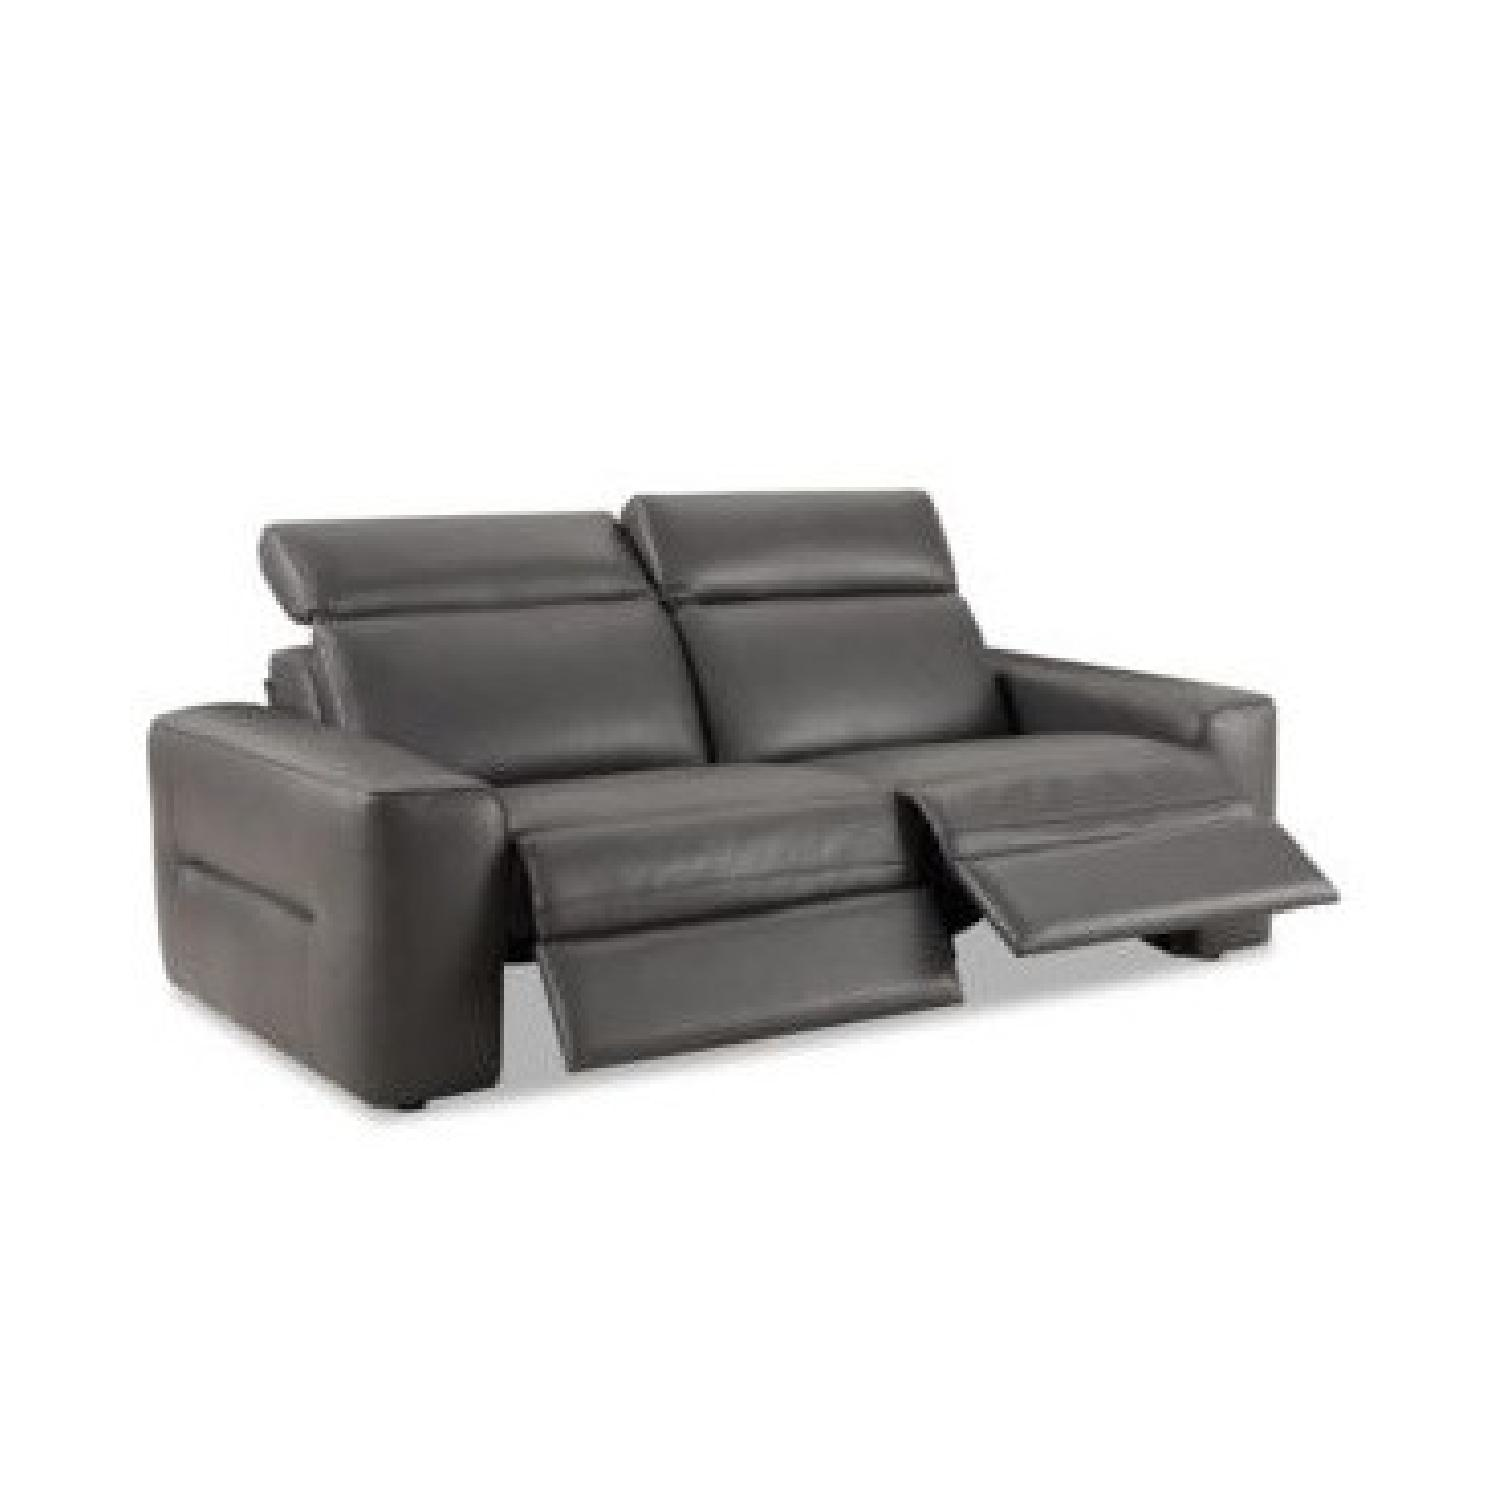 Chateau D'Ax Toby Reclining Sofa - image-5